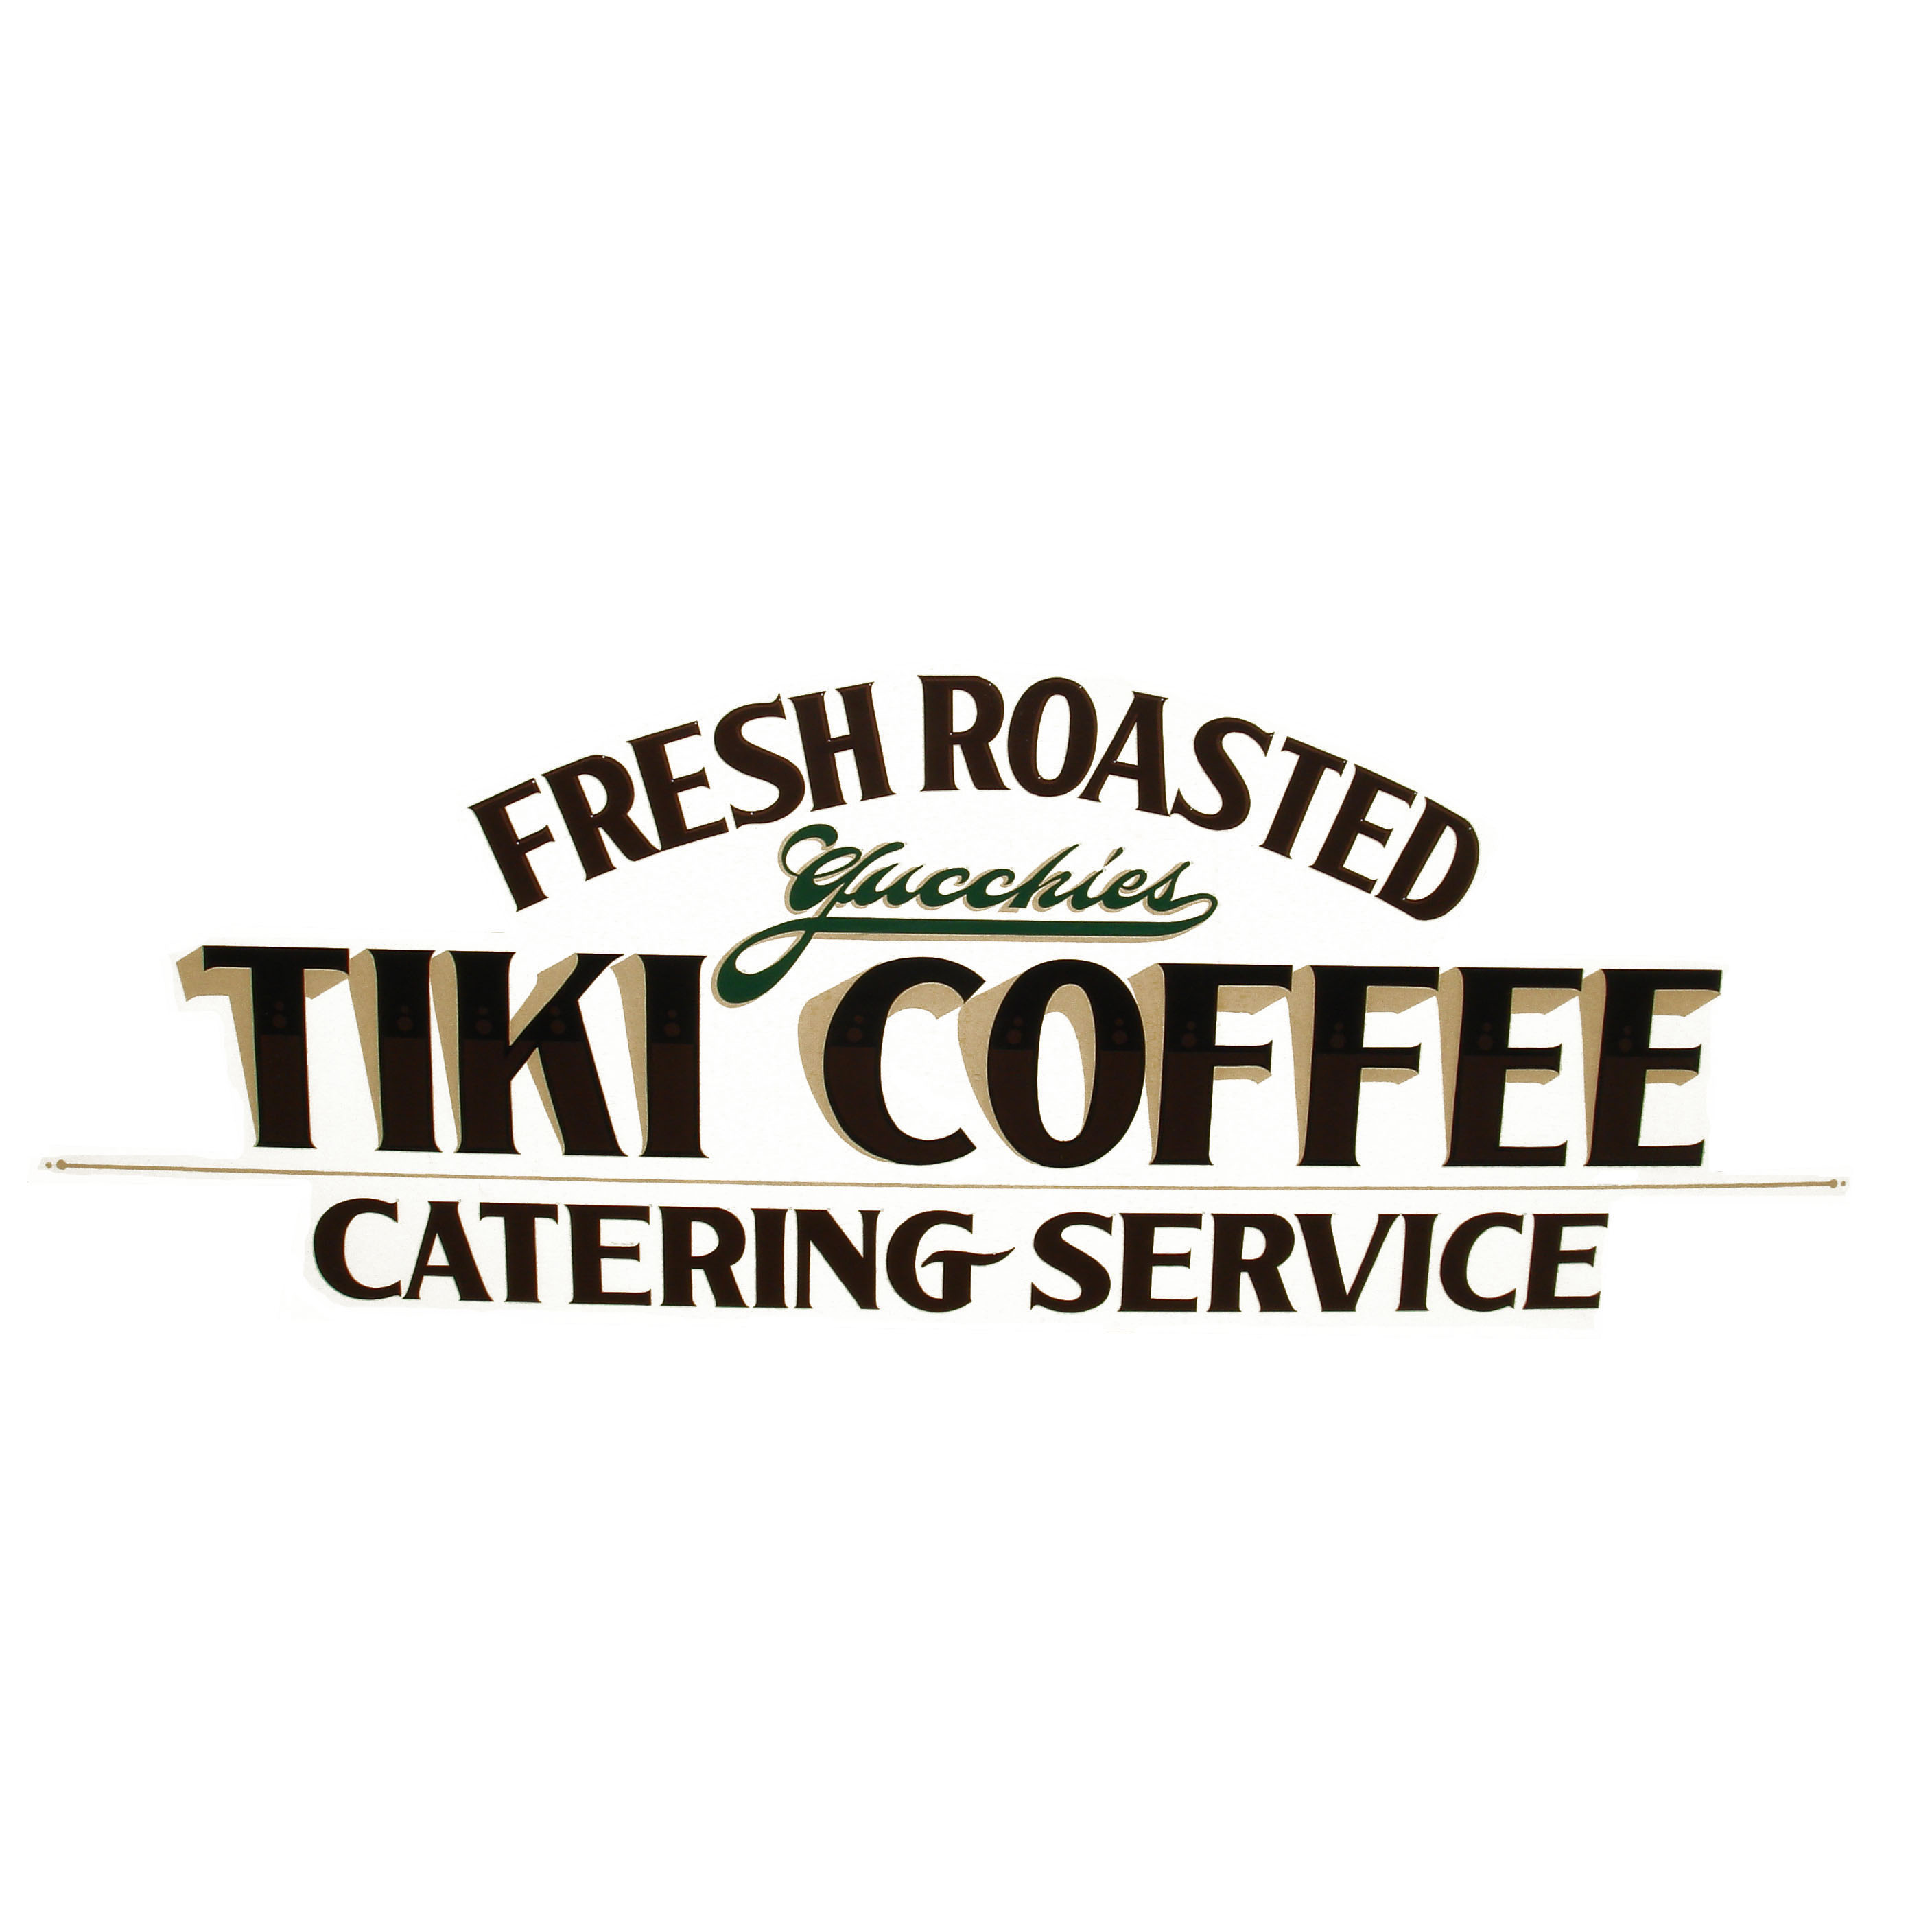 TIKI COFFEE